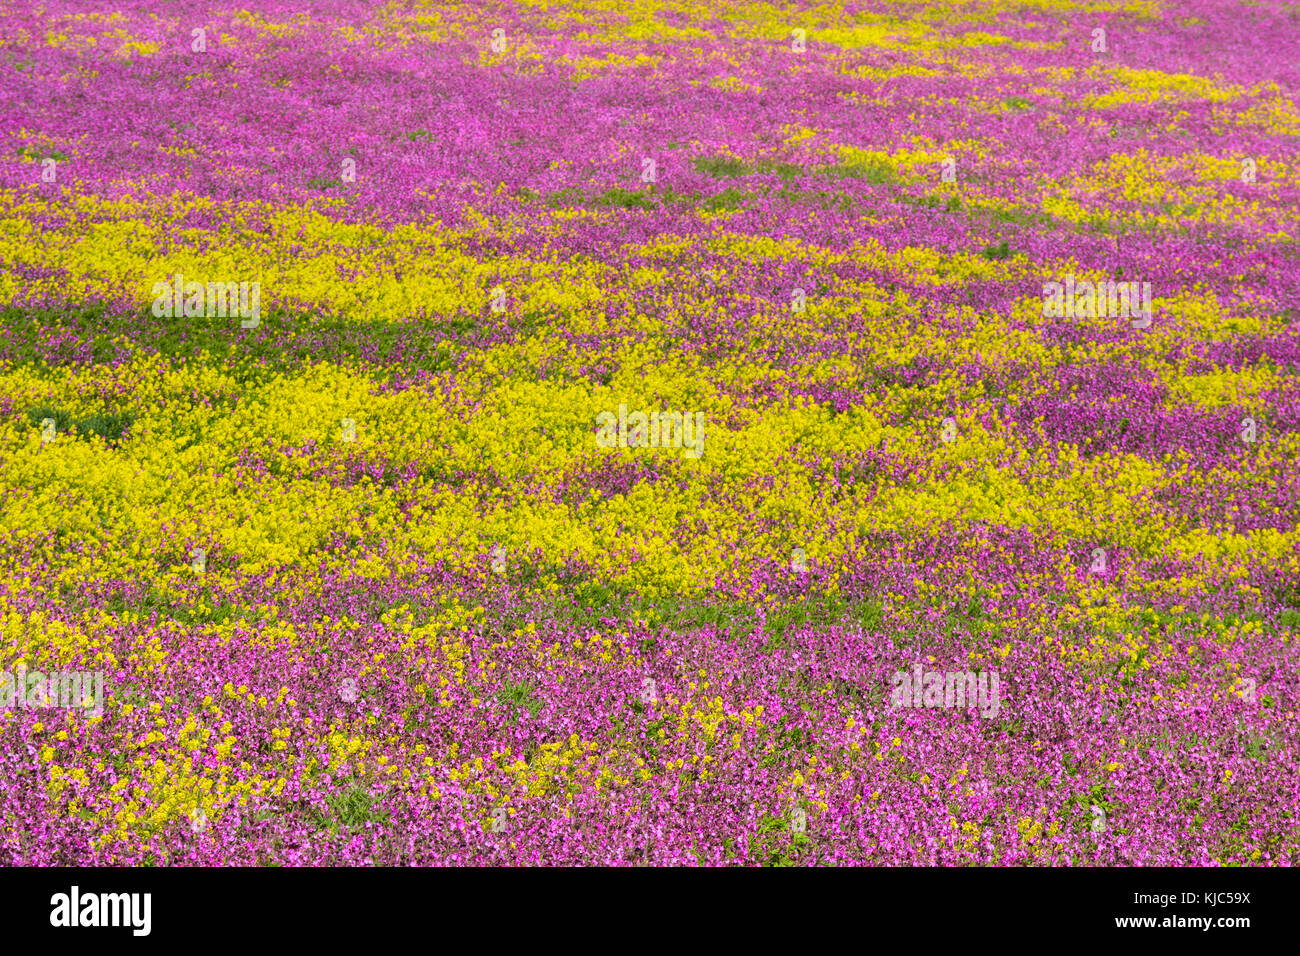 Close-up of blooming canola field with pink flowering plant at Bamburgh in Northumberland, England, United Kingdom - Stock Image